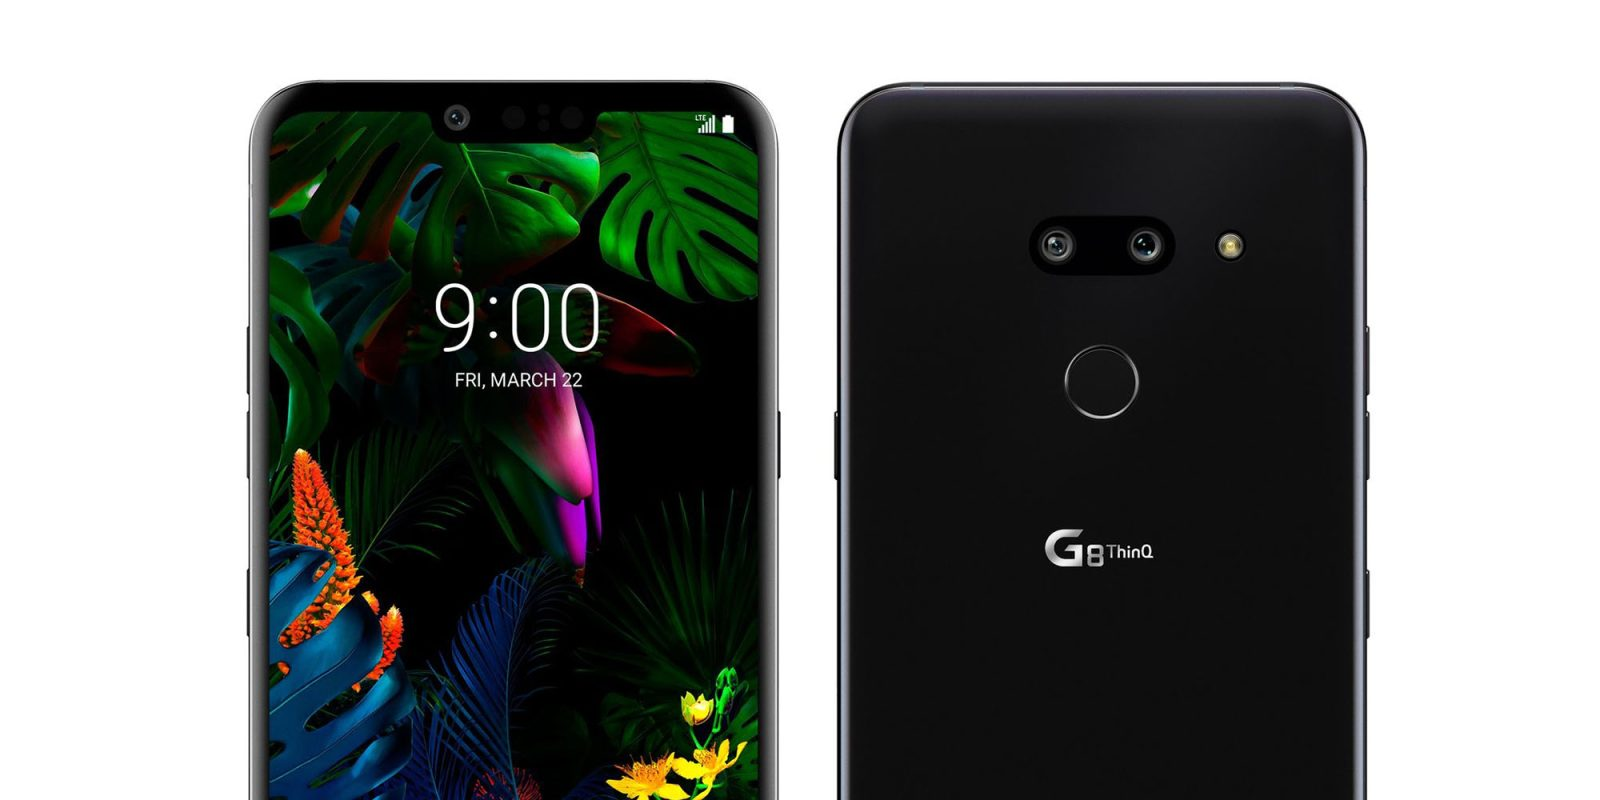 Photo of the screen makes the difference: official modeled images of the LG G8